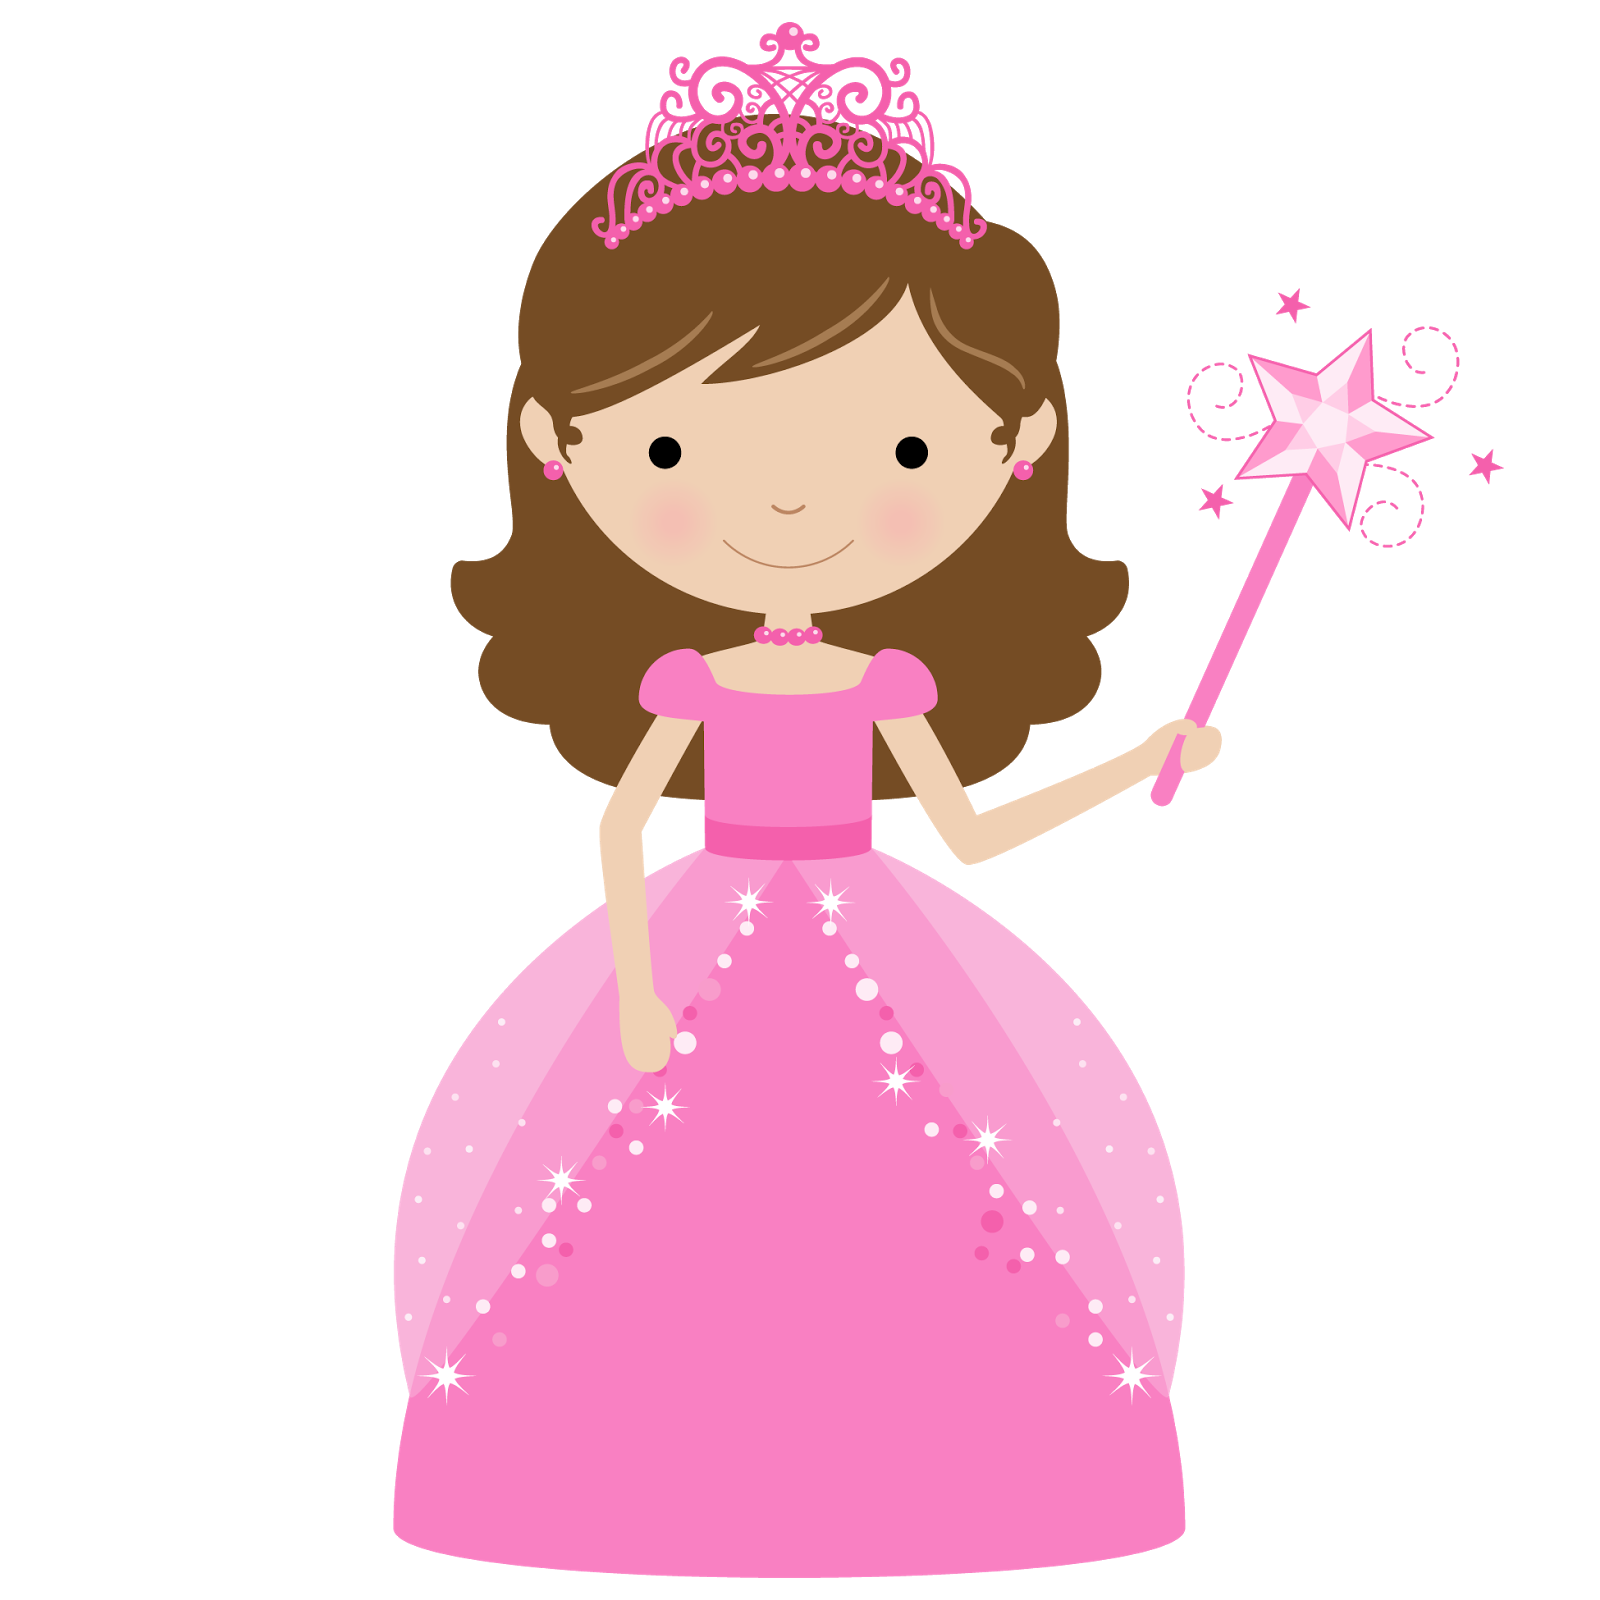 Princesa Salon Princess And Cupcake Clipart Oh My Fiesta In English